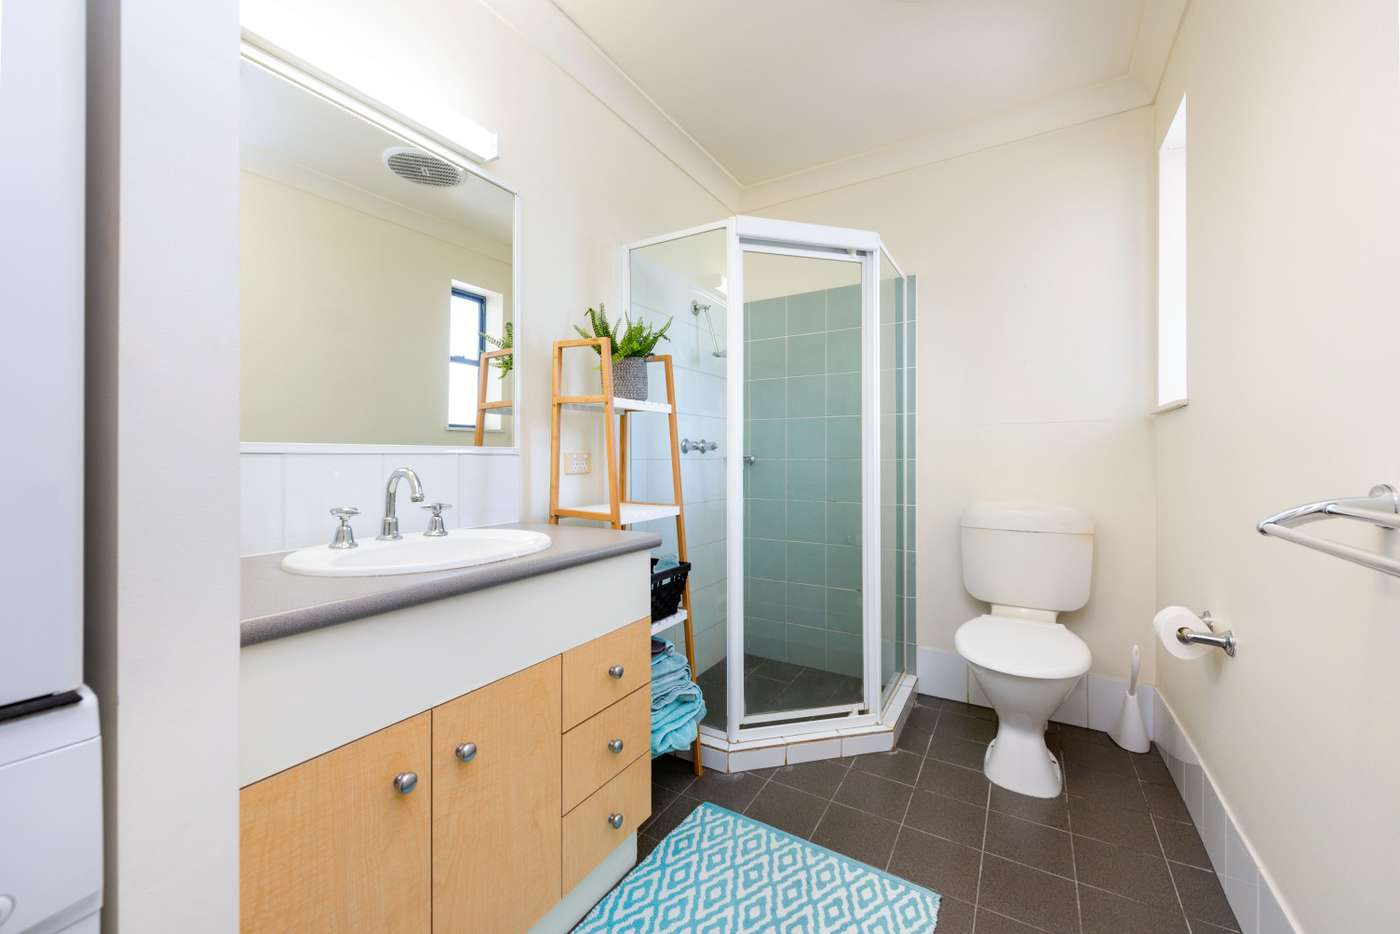 Sixth view of Homely apartment listing, 24/300 Sir Fred Schonell Drive, St Lucia QLD 4067